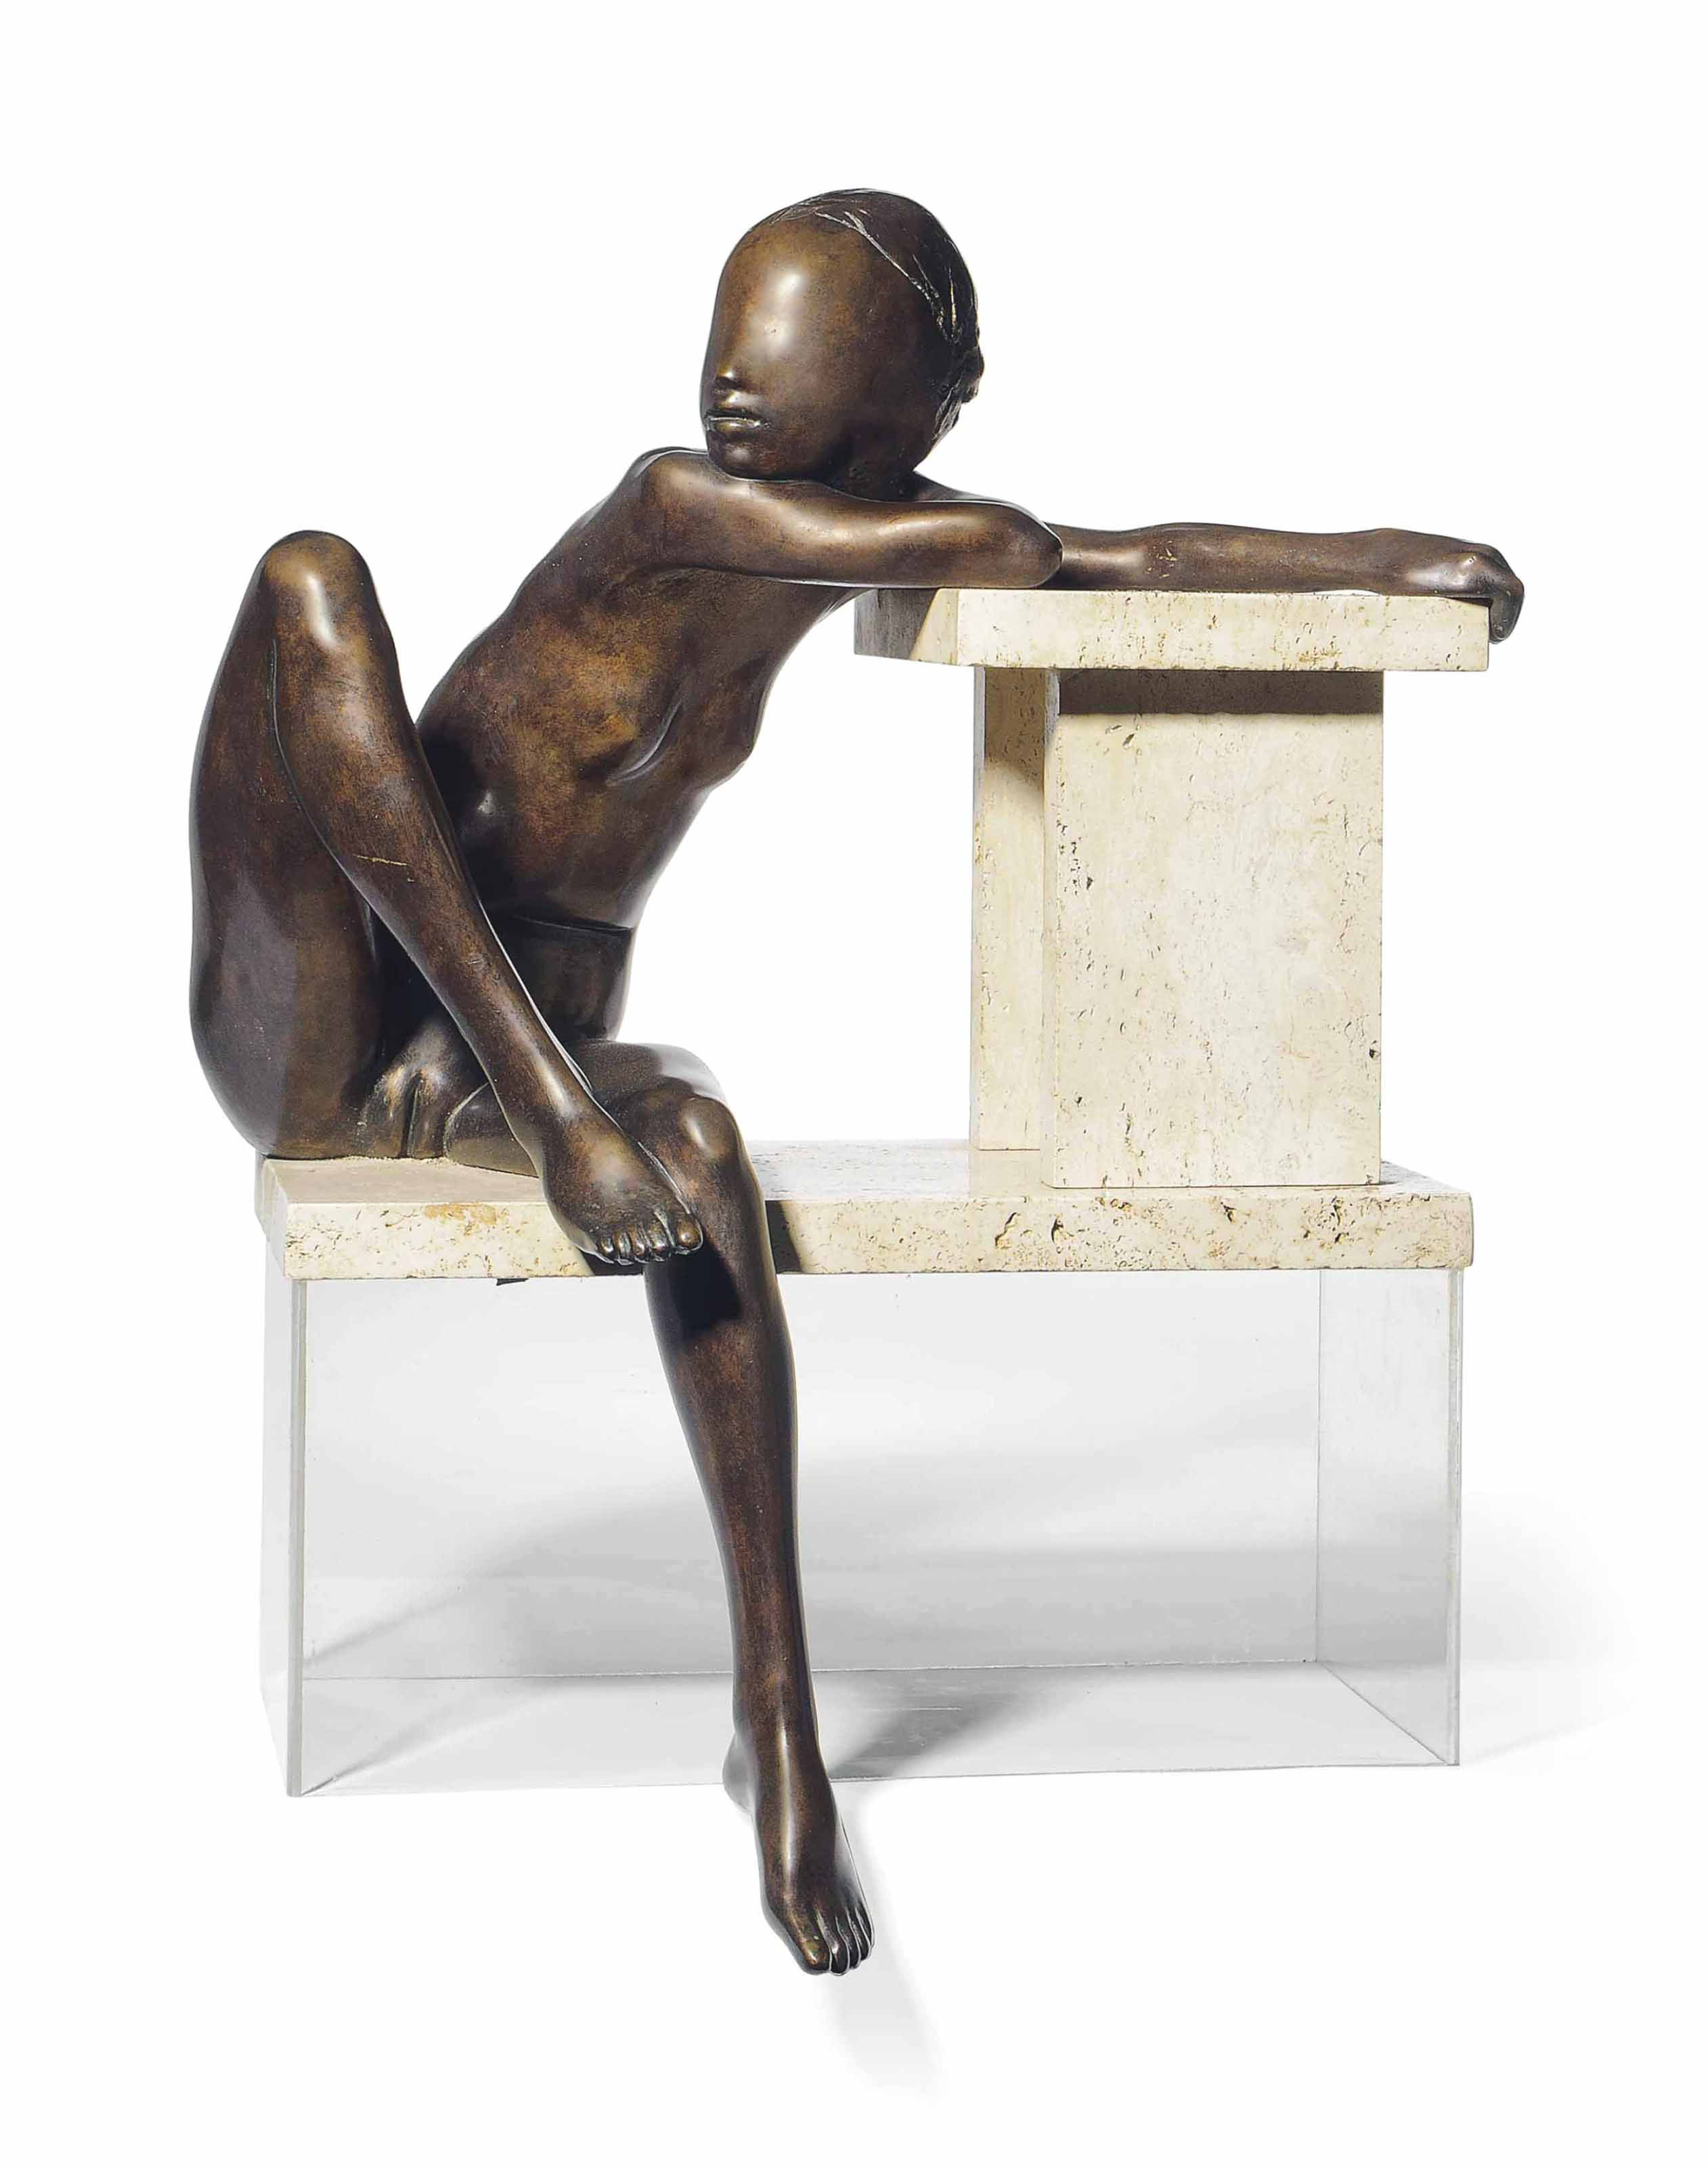 Maquette: Girl with knee raised